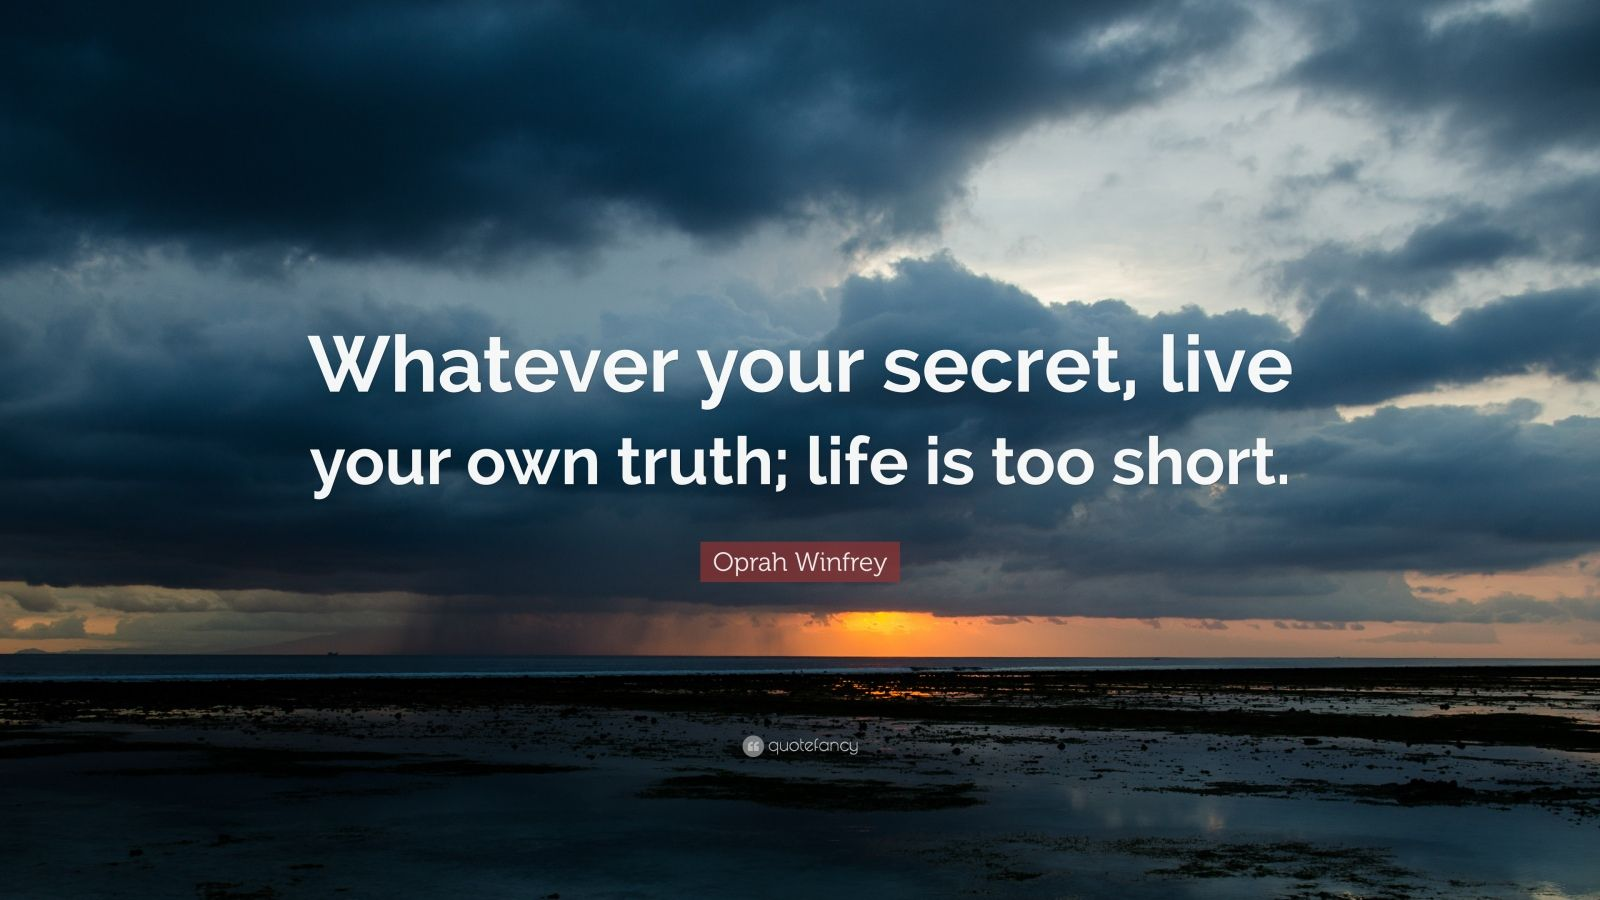 """Oprah Winfrey Quote: """"Whatever your secret, live your own truth; life is too short."""""""